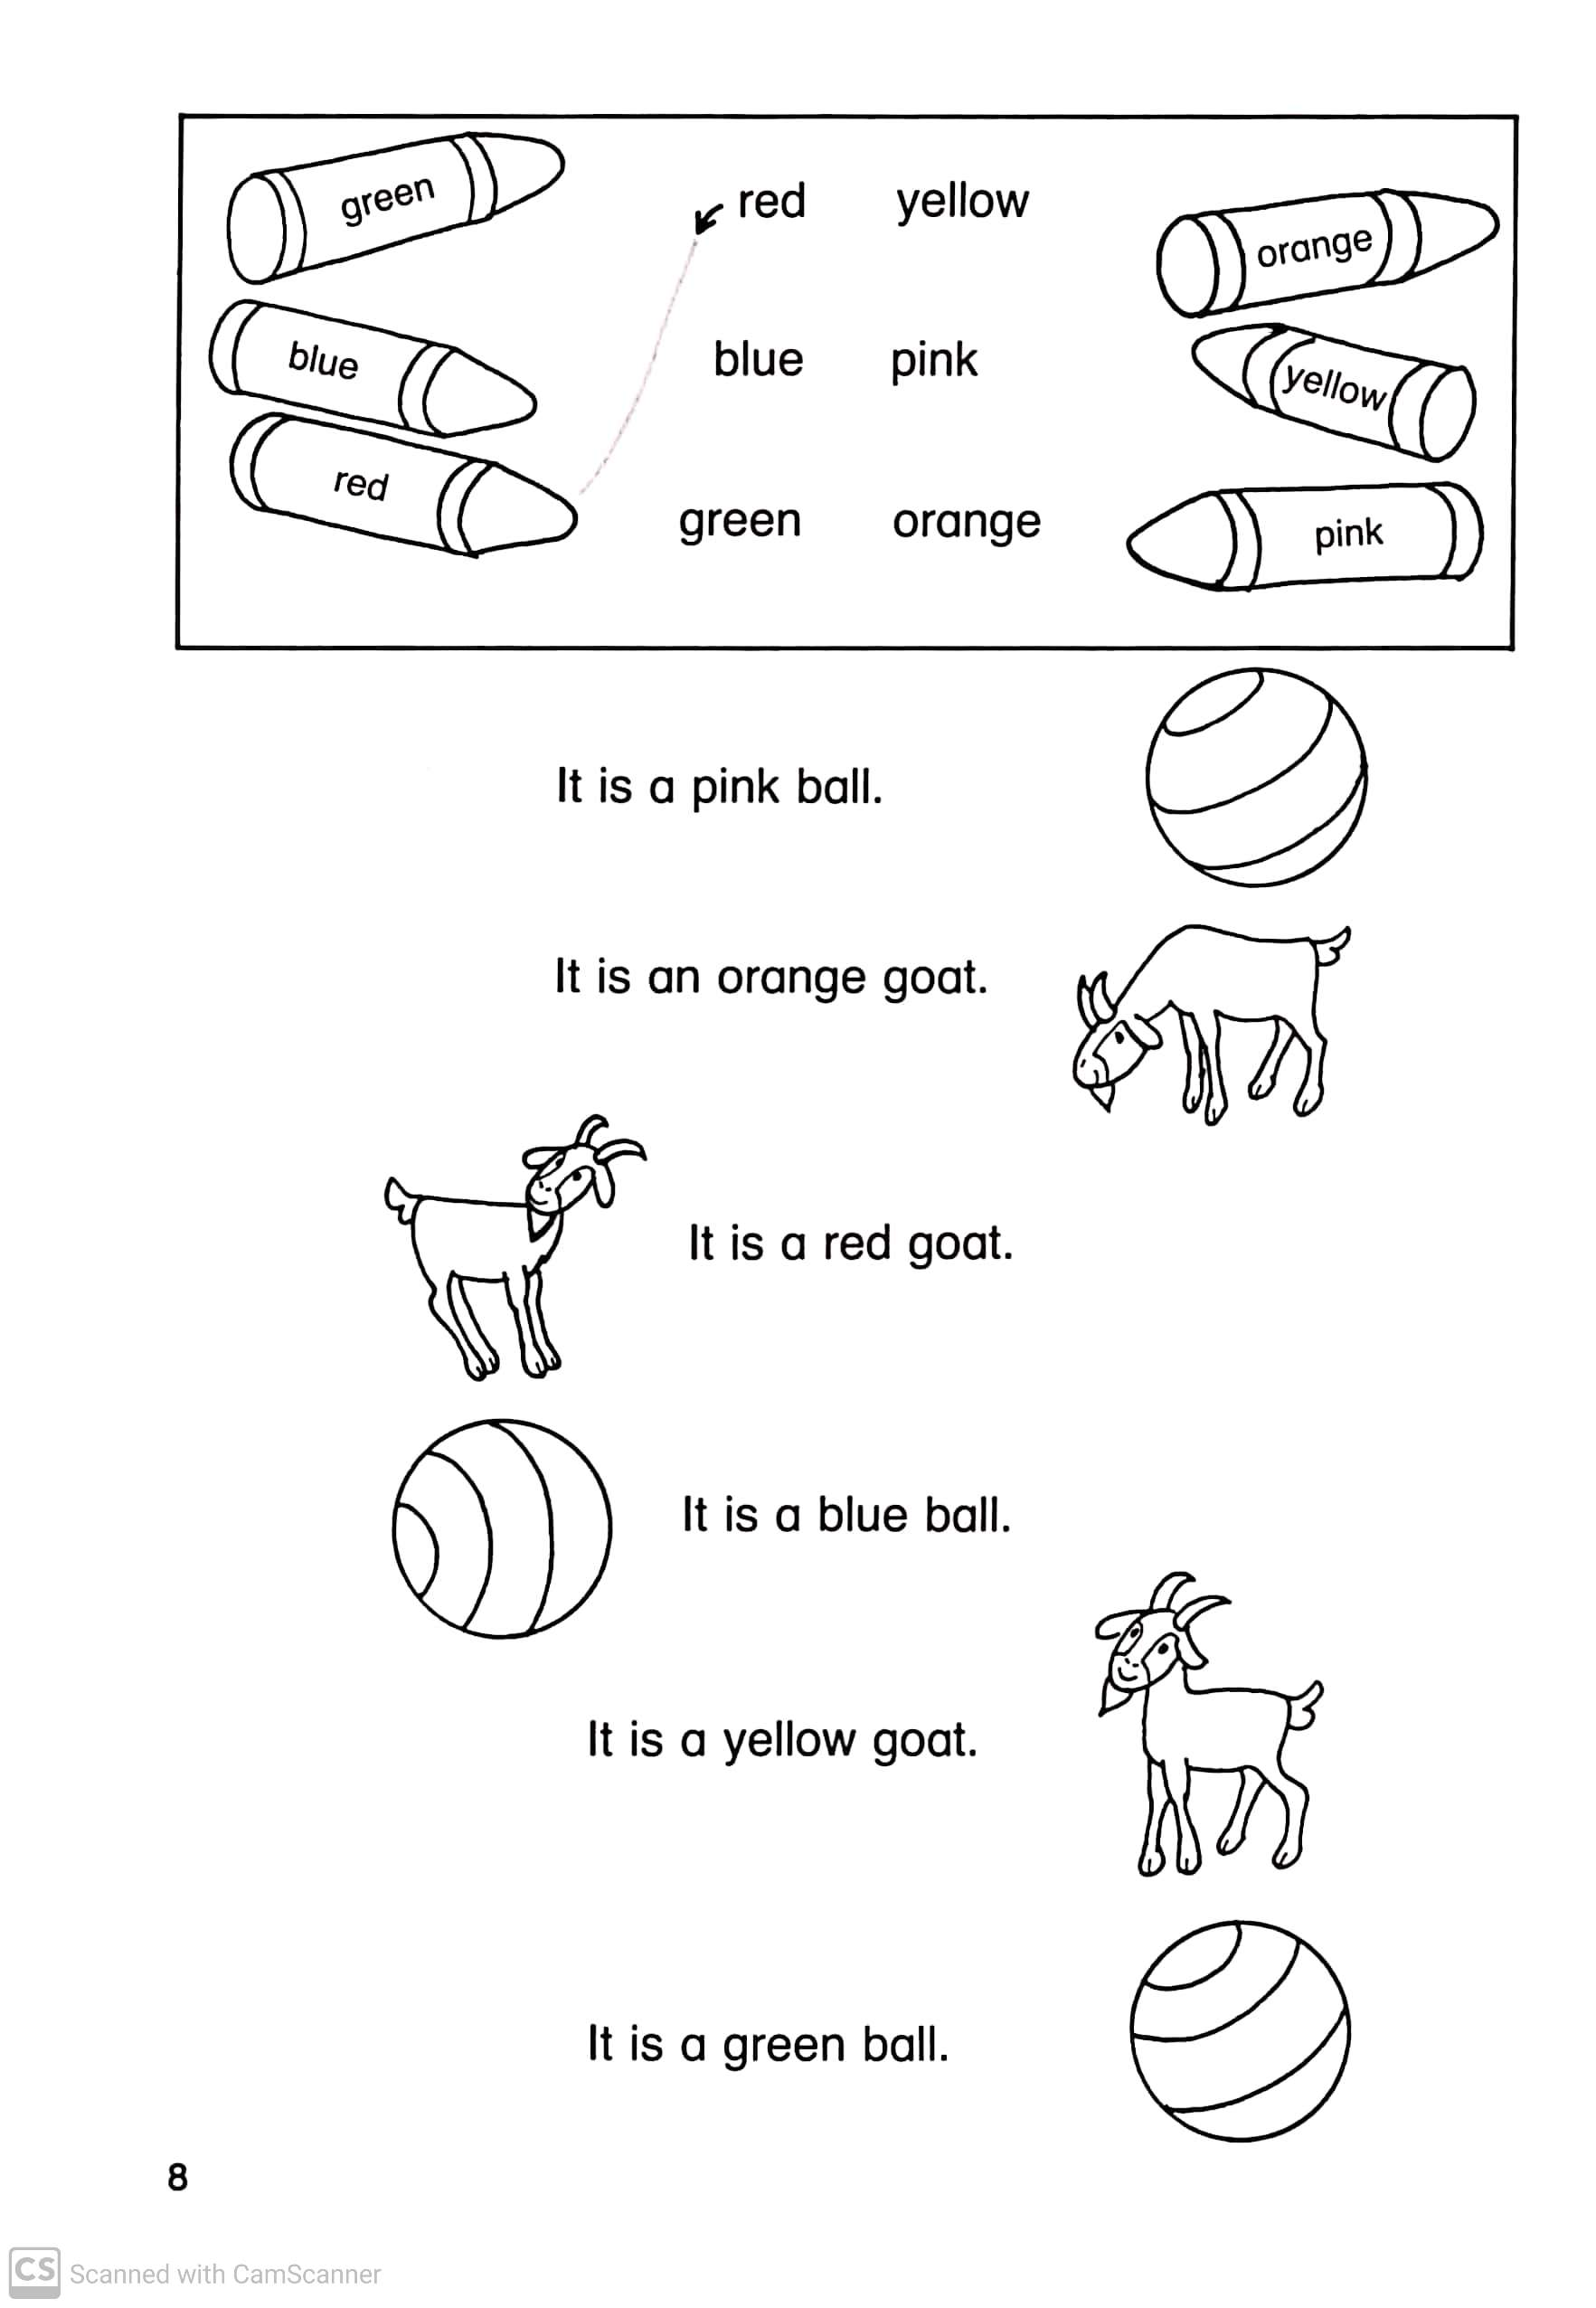 English Worksheets For Grade 2 Teaching Kids To Read And